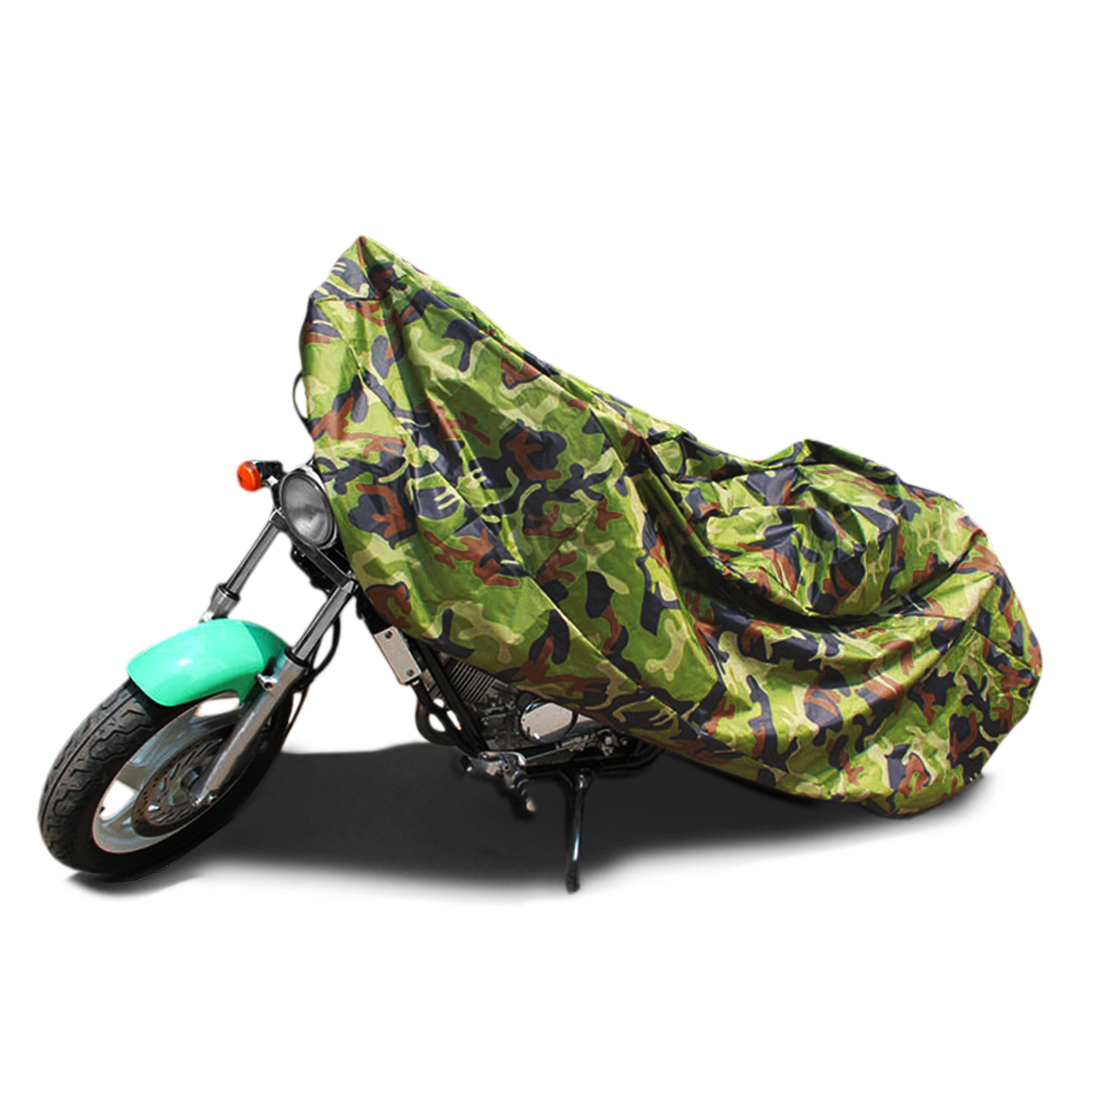 L 190T Rain Dust Motorcycle Cover Camouflage Outdoor Waterproof